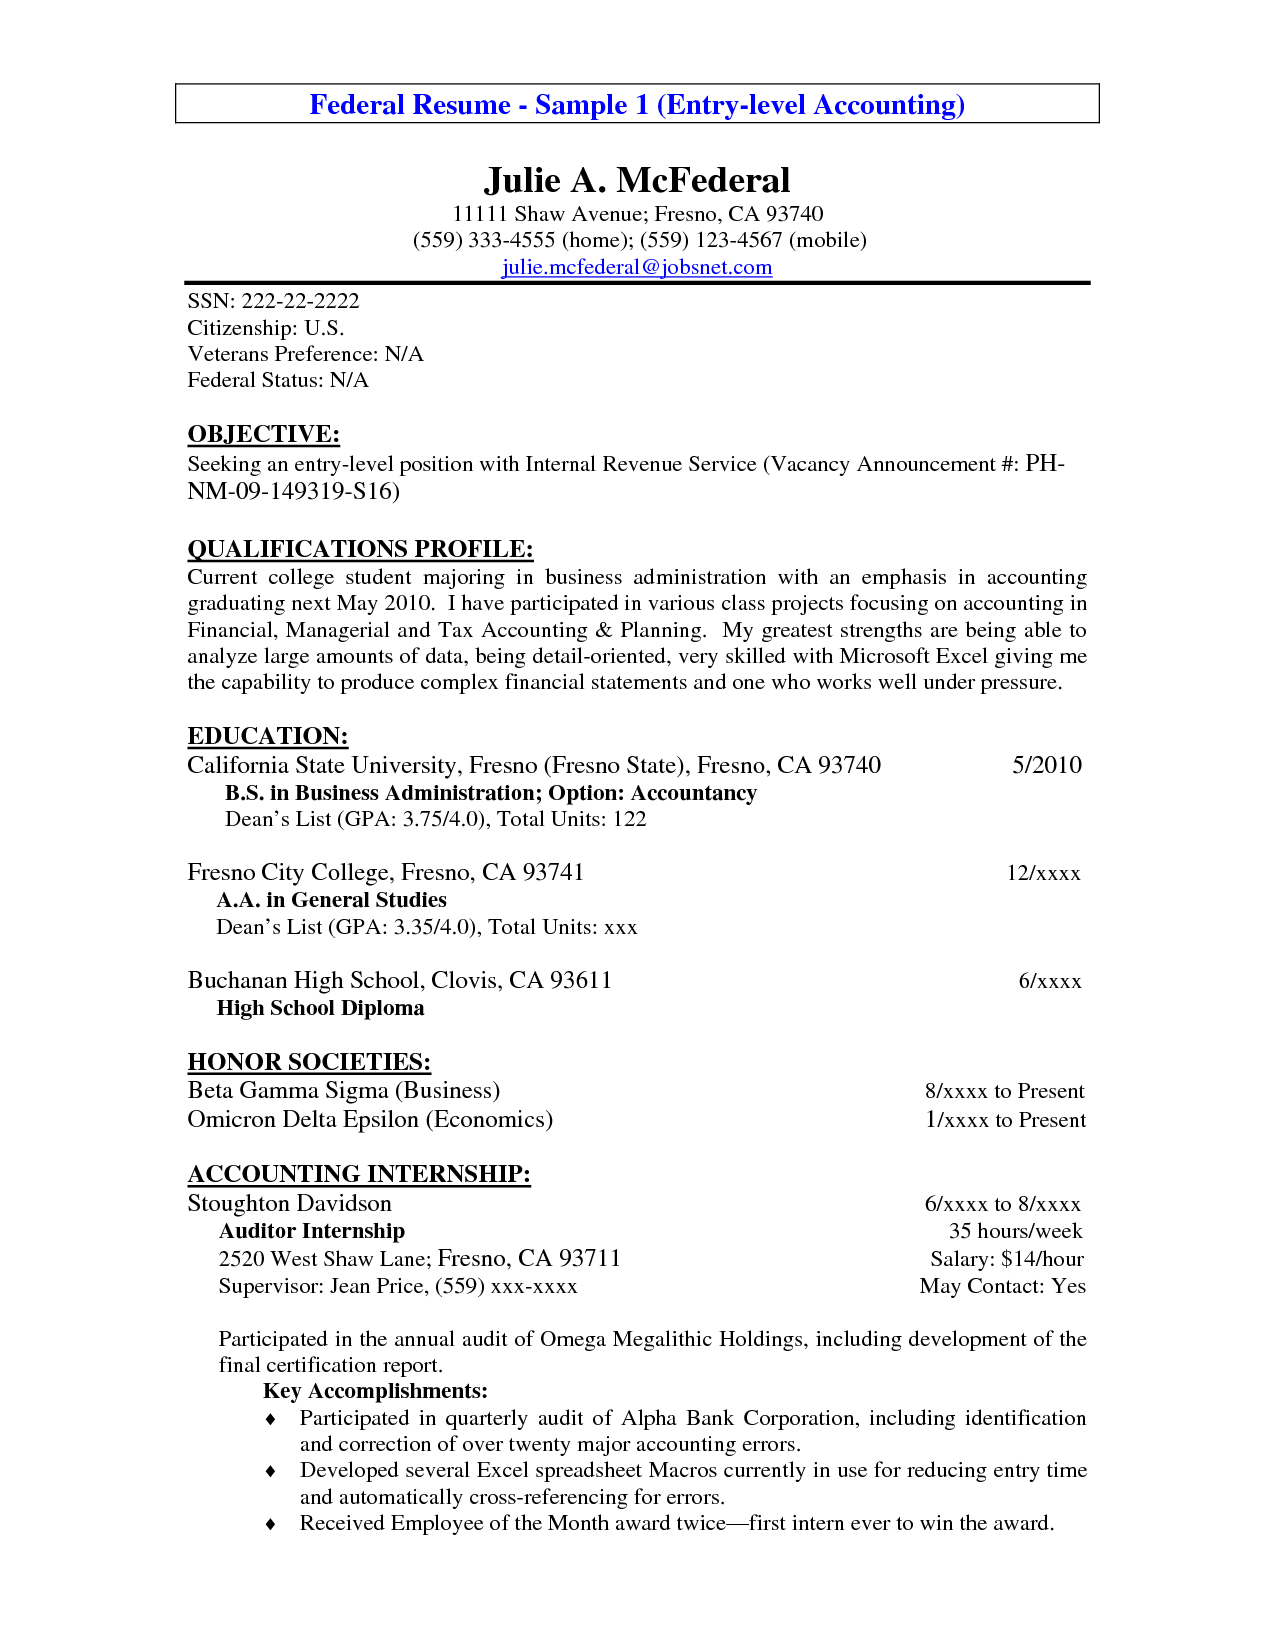 Accounting Internship Resume Objective Entrancing Ann Debusschere A_Debusschere On Pinterest